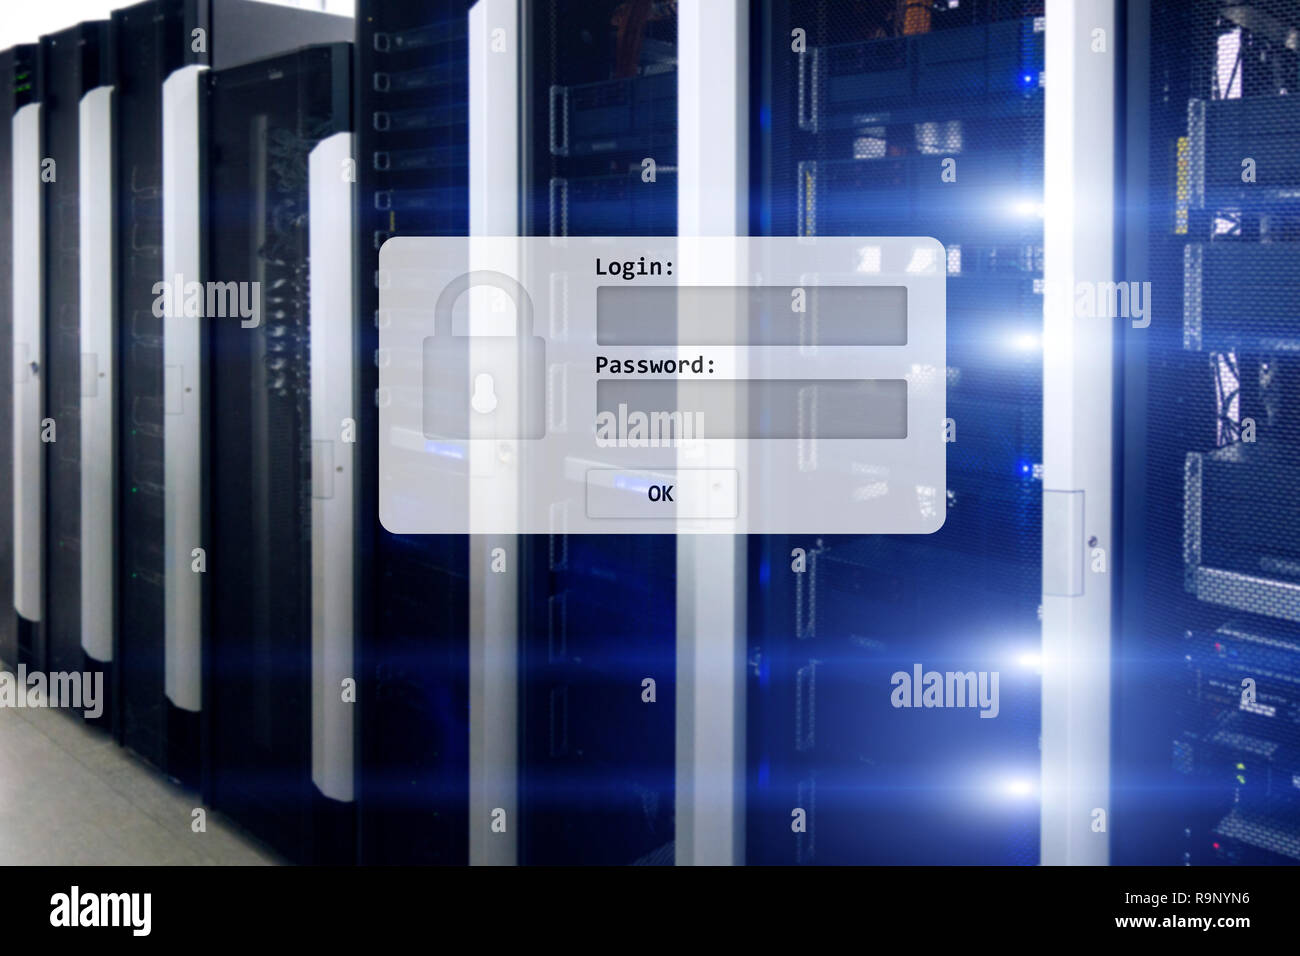 Server room, login and password request, data access and security. Stock Photo